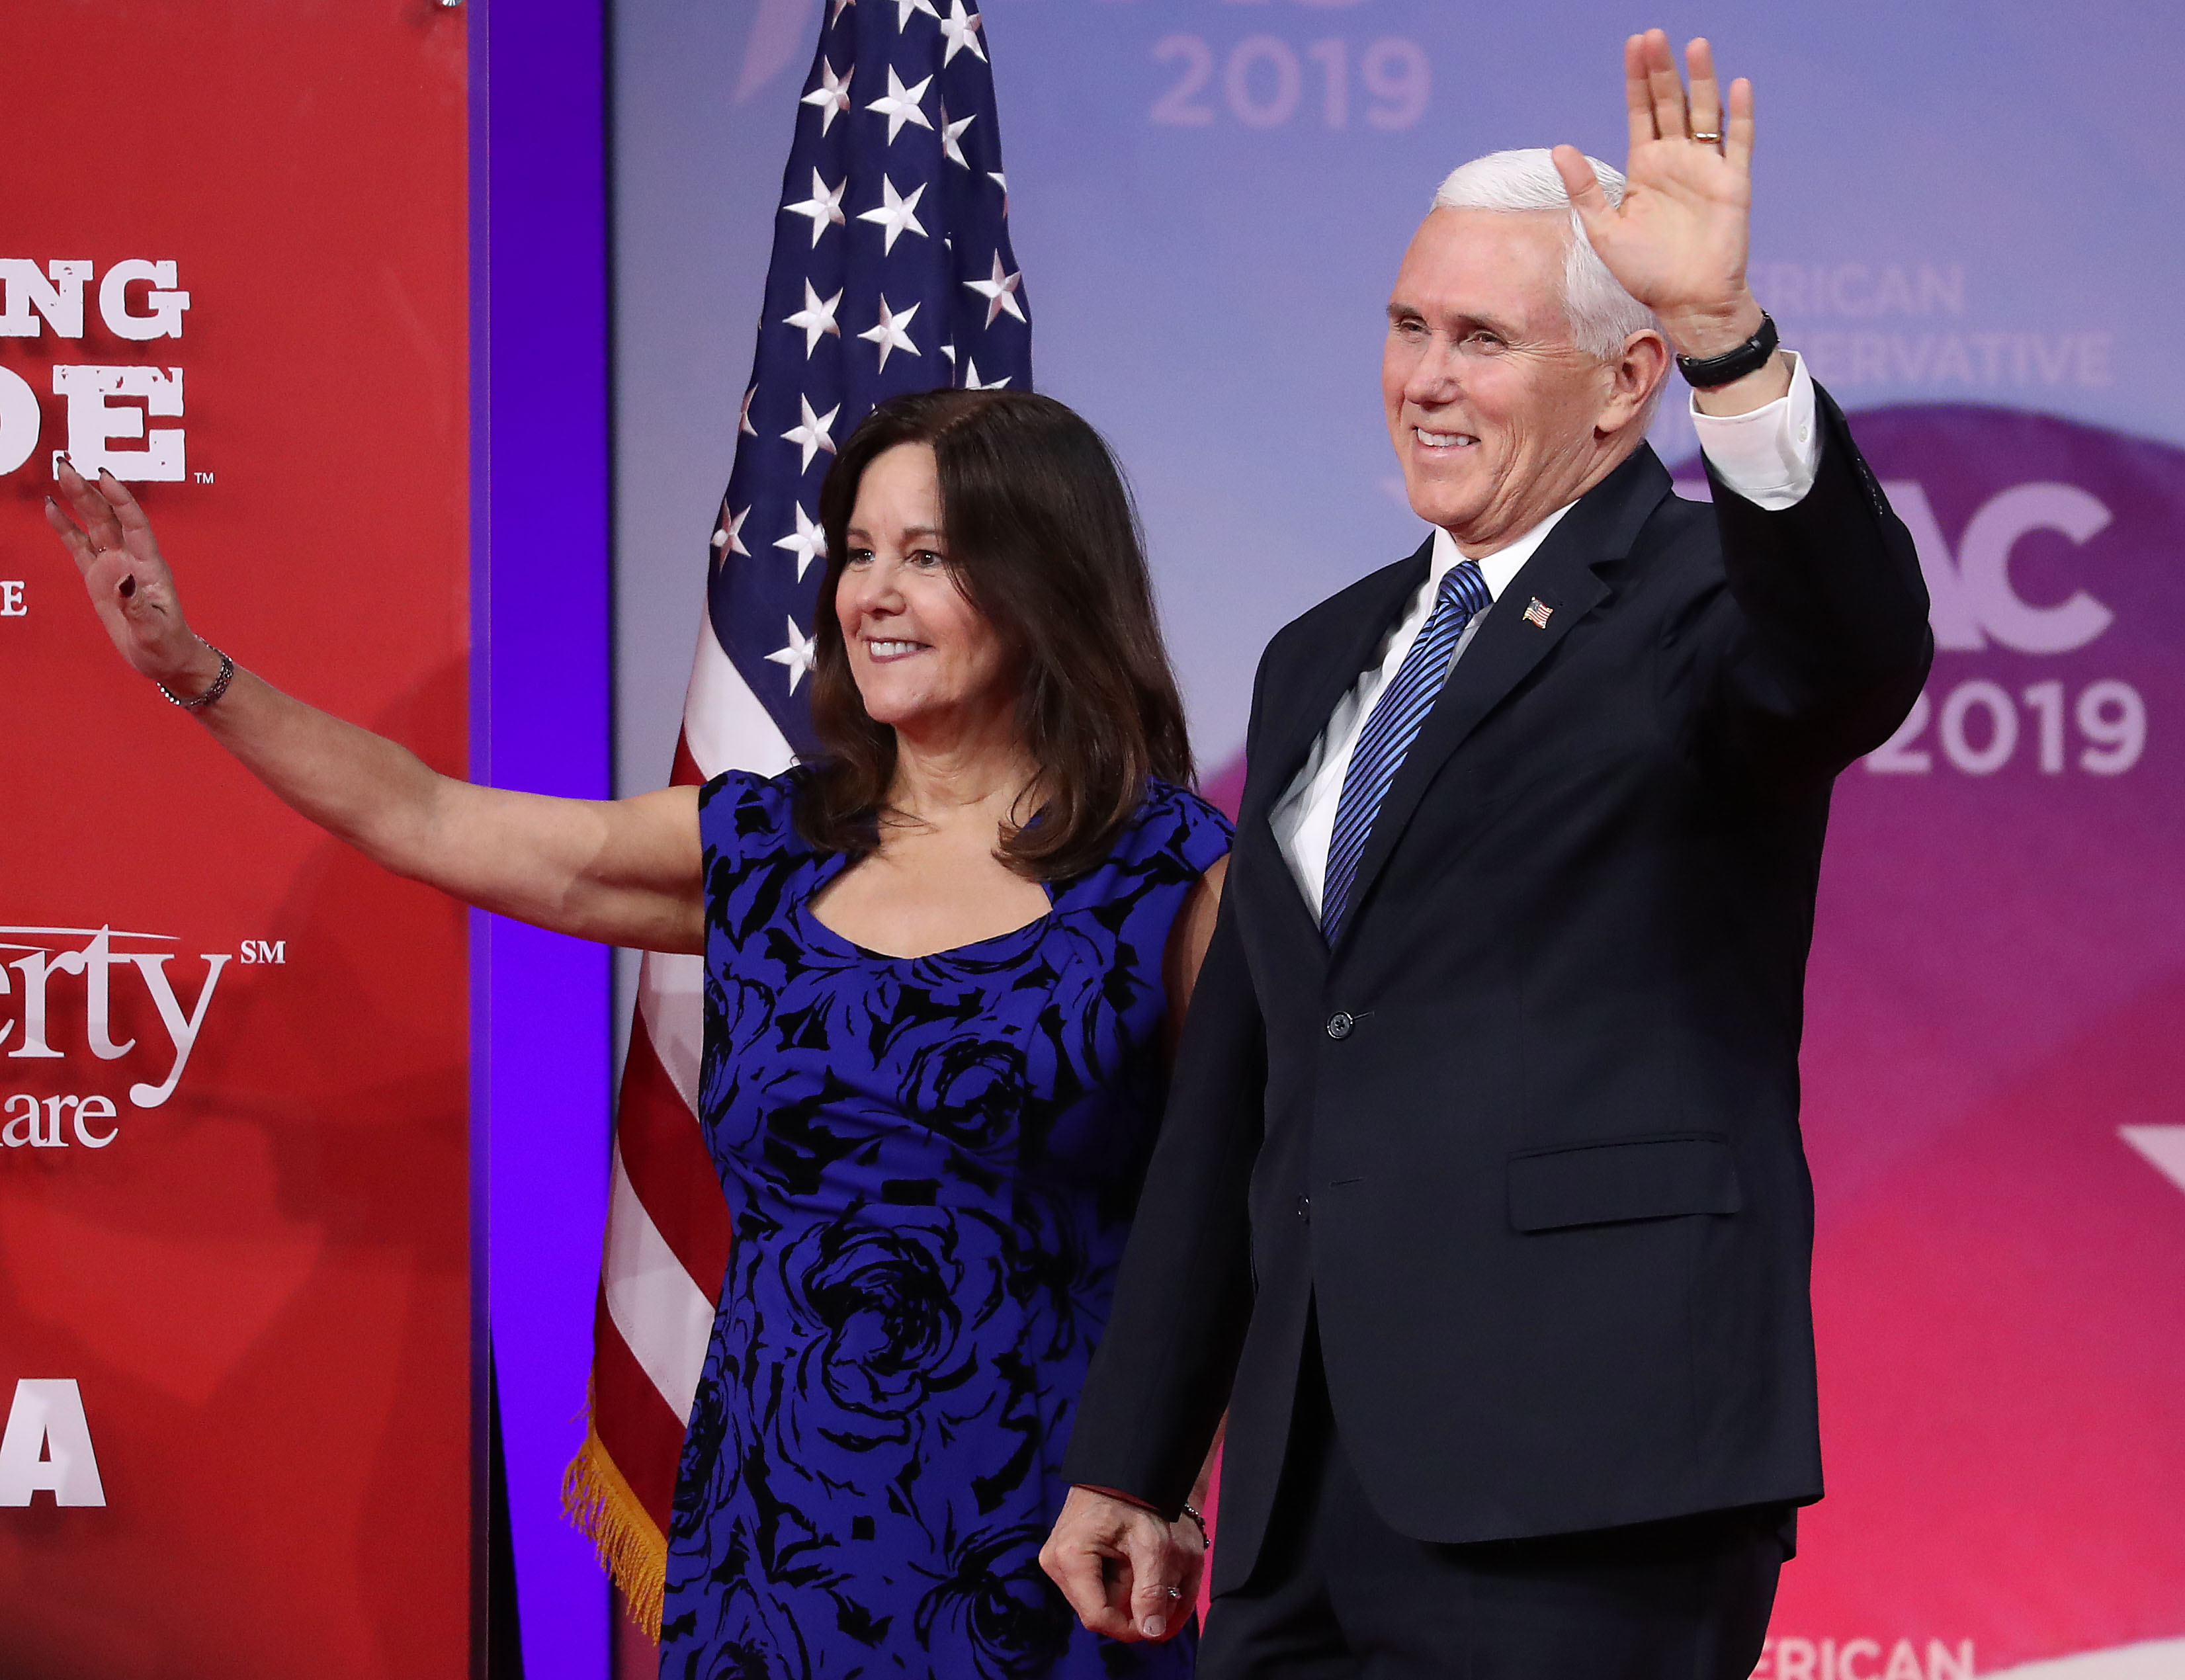 US Vice President Mike Pence and his wife Karen waving